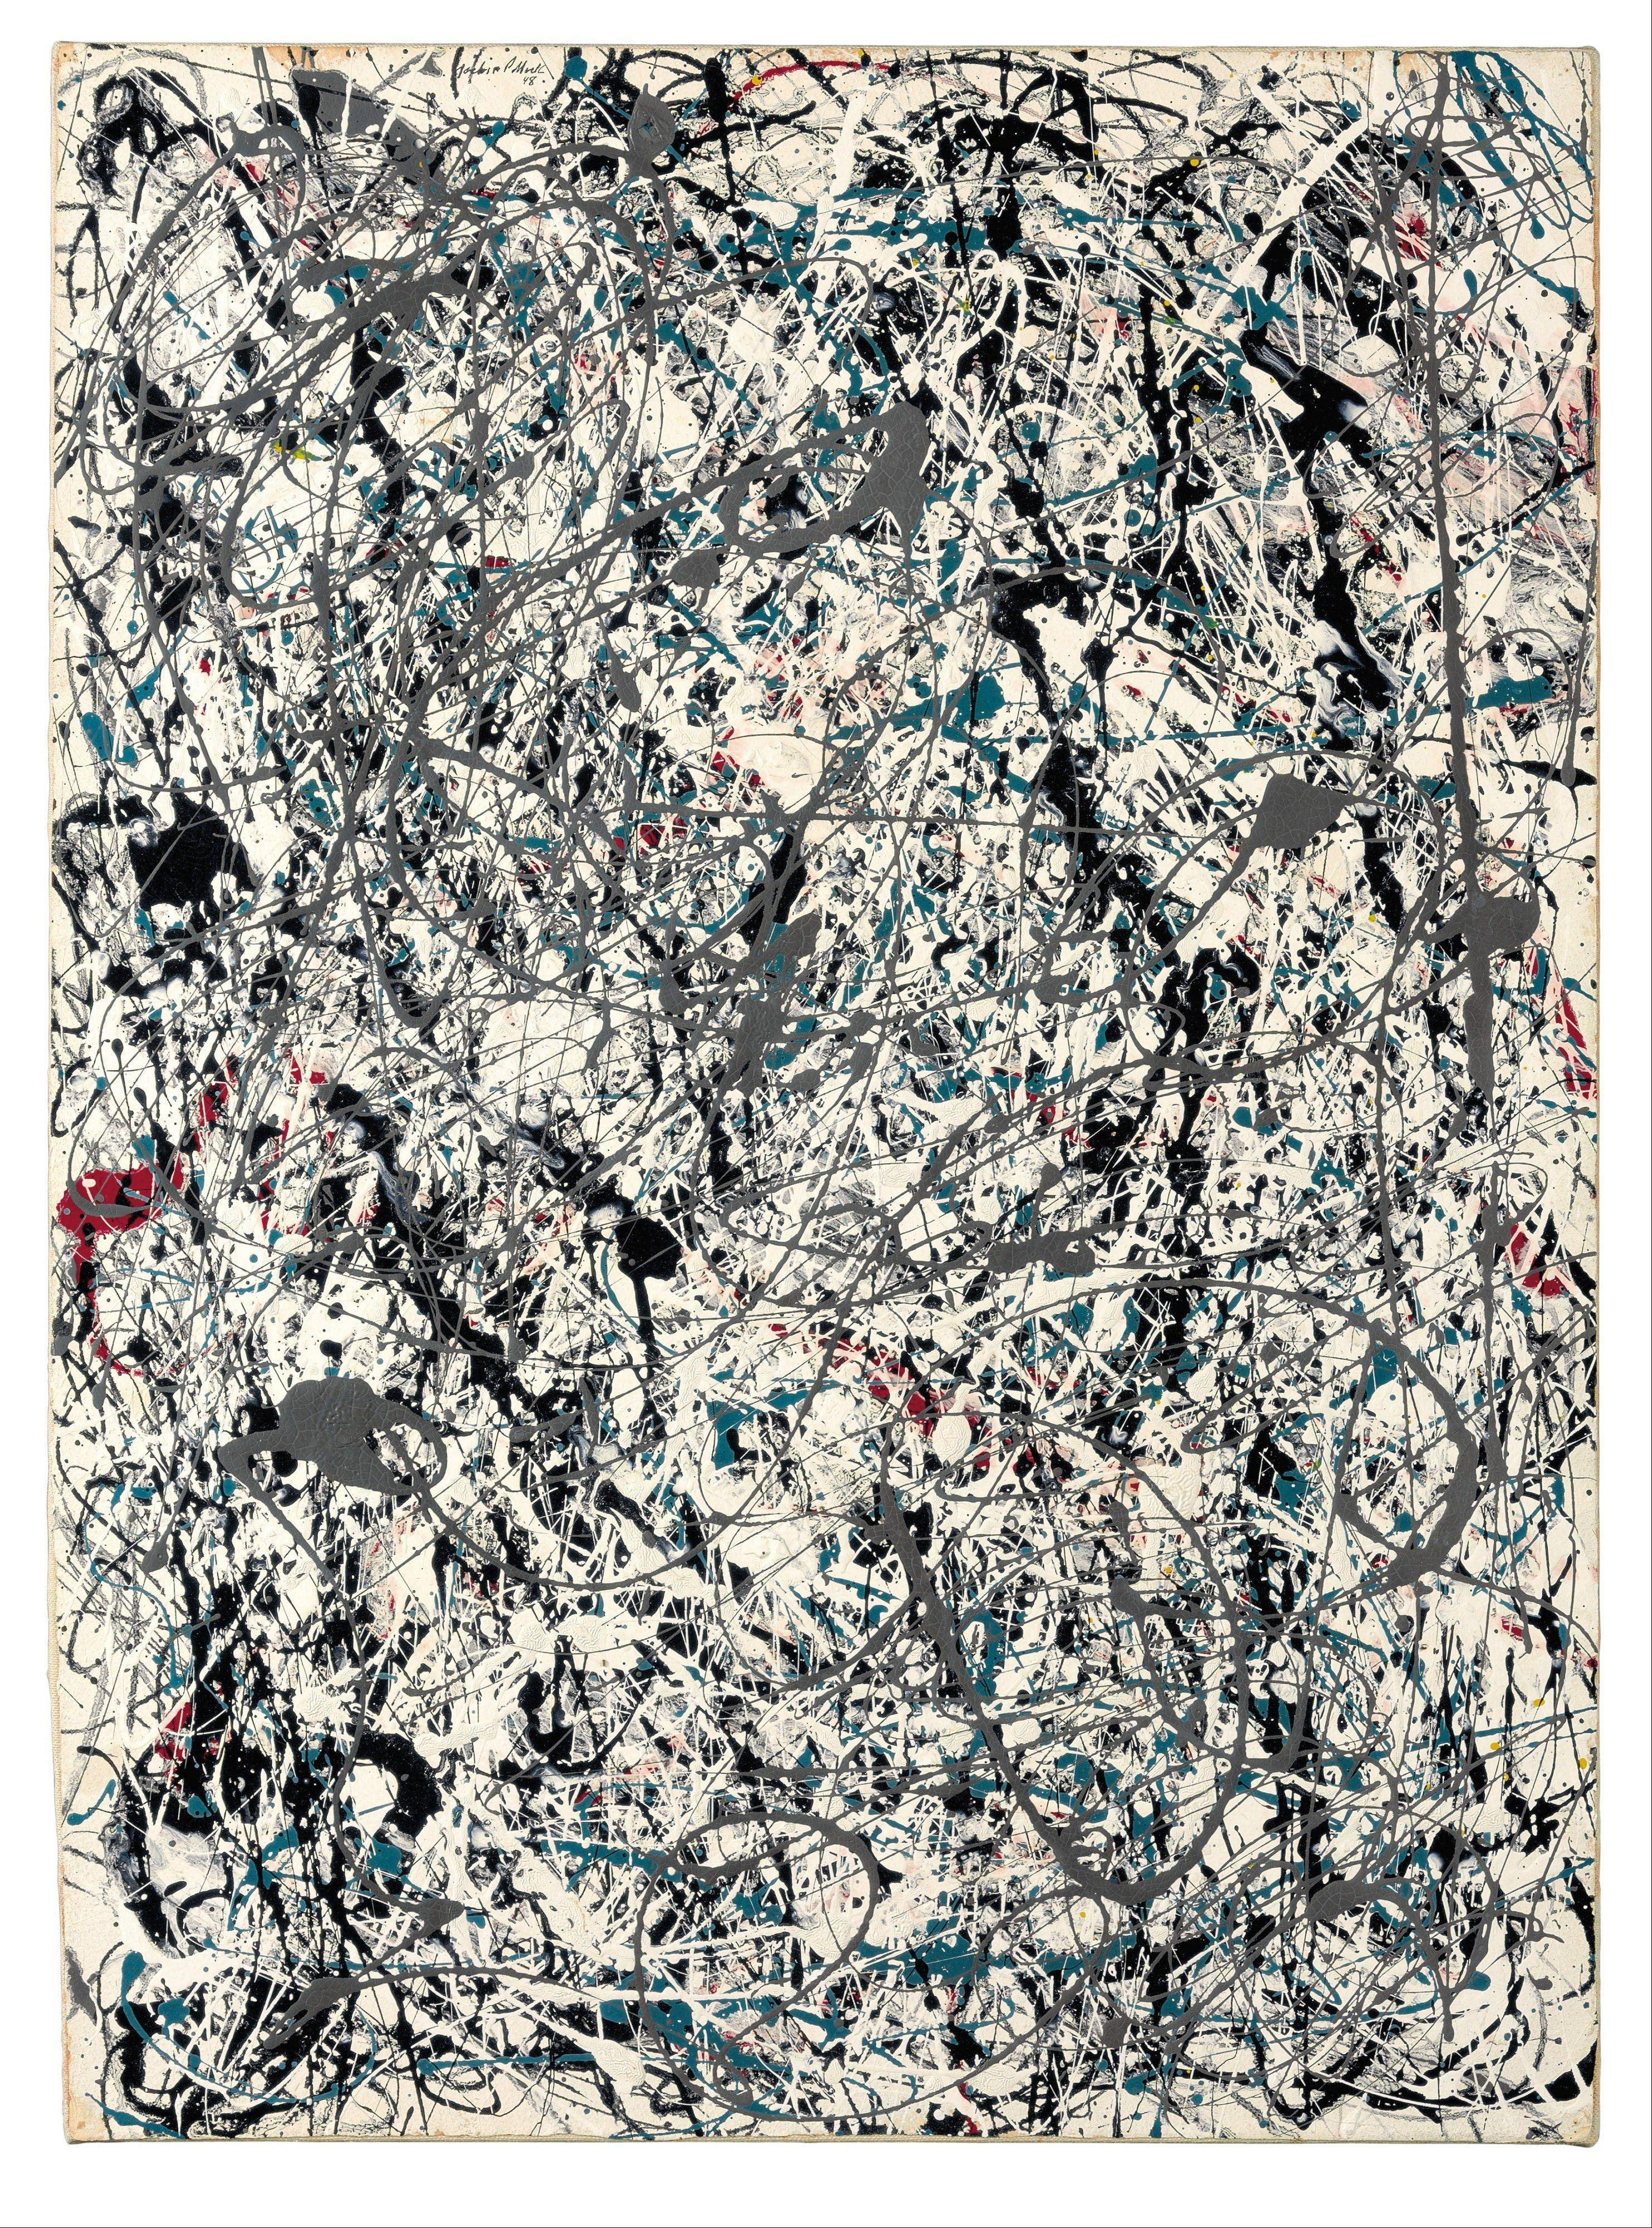 "Associated Press/Christie'sThis image released by Christie's auction house on Friday shows a drip painting by Jackson Pollock. The important drip painting by Pollock, ""Number 19,"" realized a record $58.3 million at the Christie's auction."